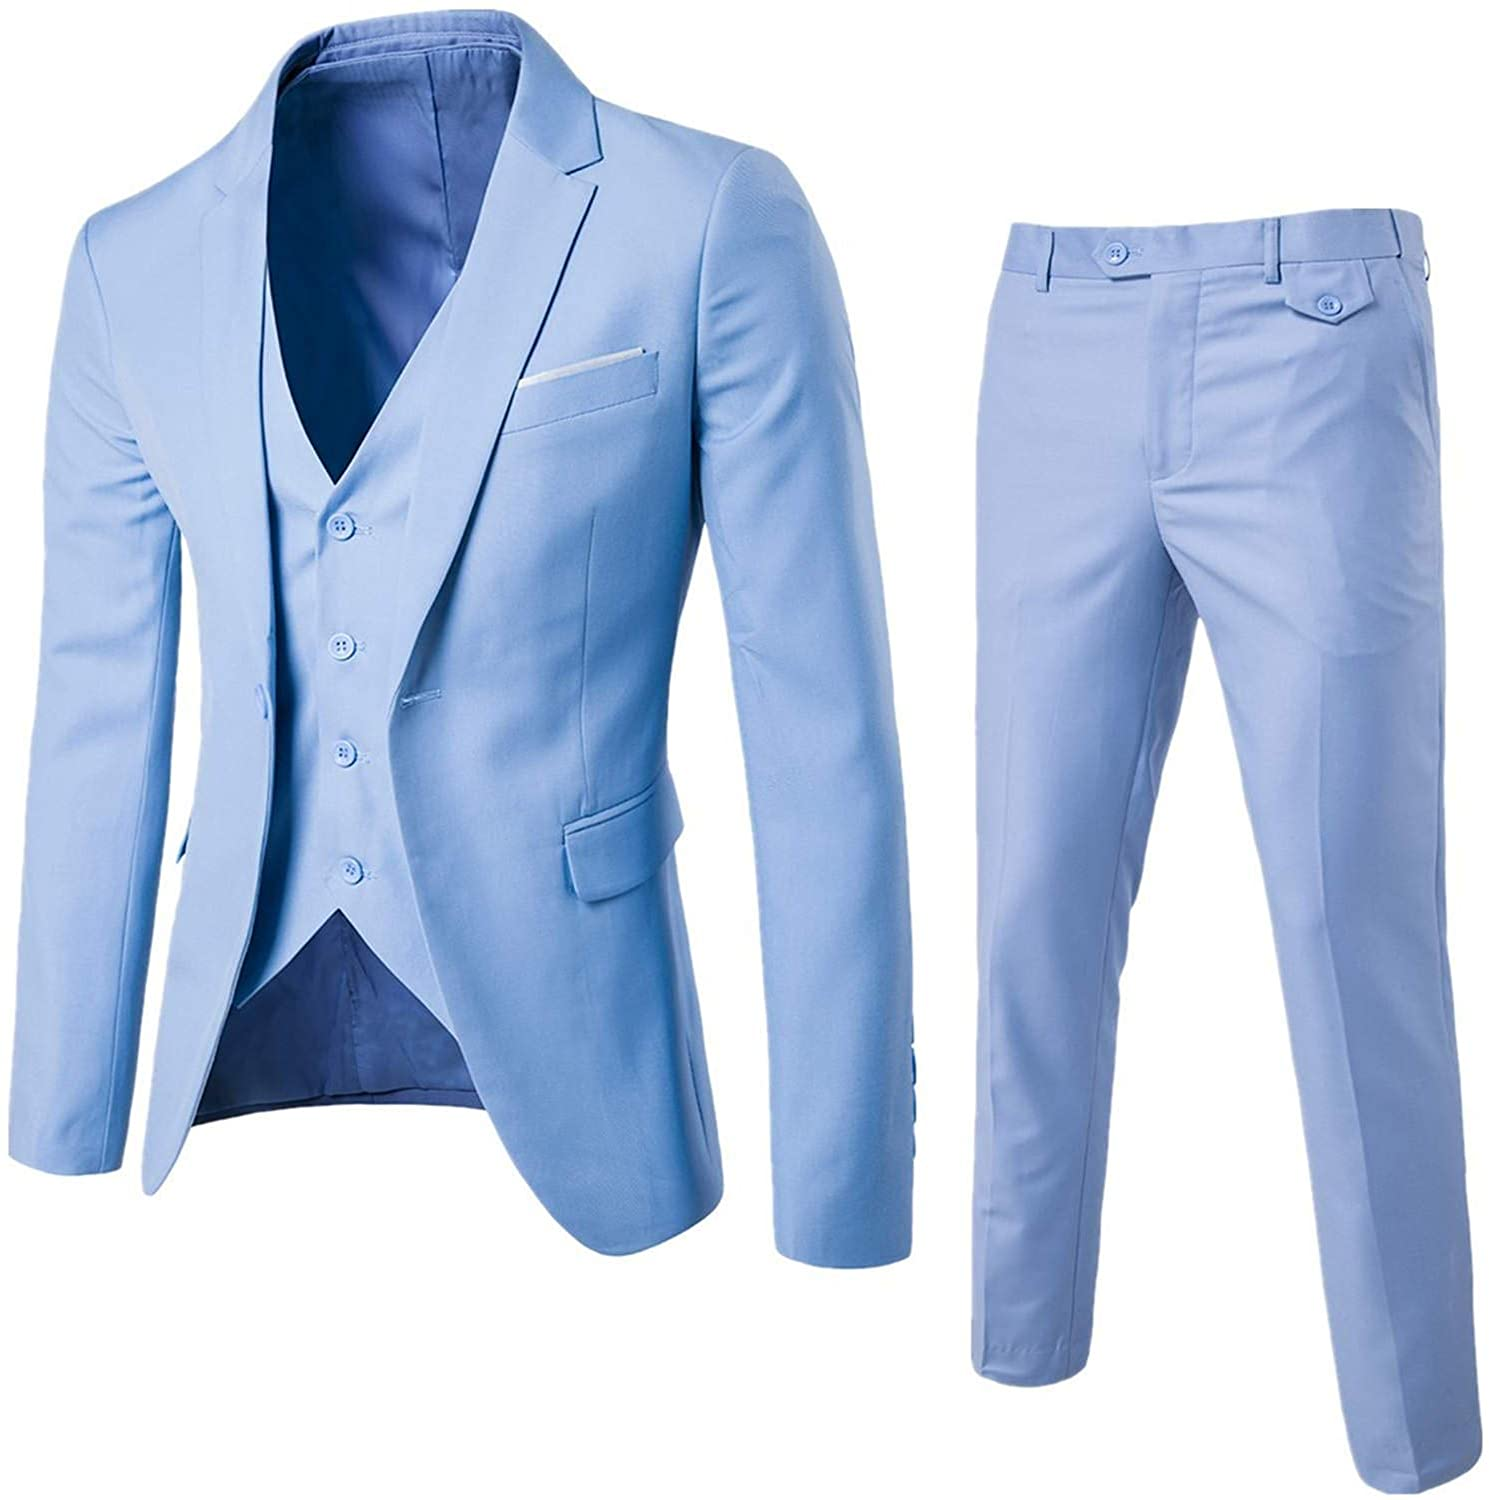 Soluo Men's 3-Piece 2 Buttons Slim Fit Solid Color Jacket Smart Wedding Formal Suit (Light Blue,5X-Large)